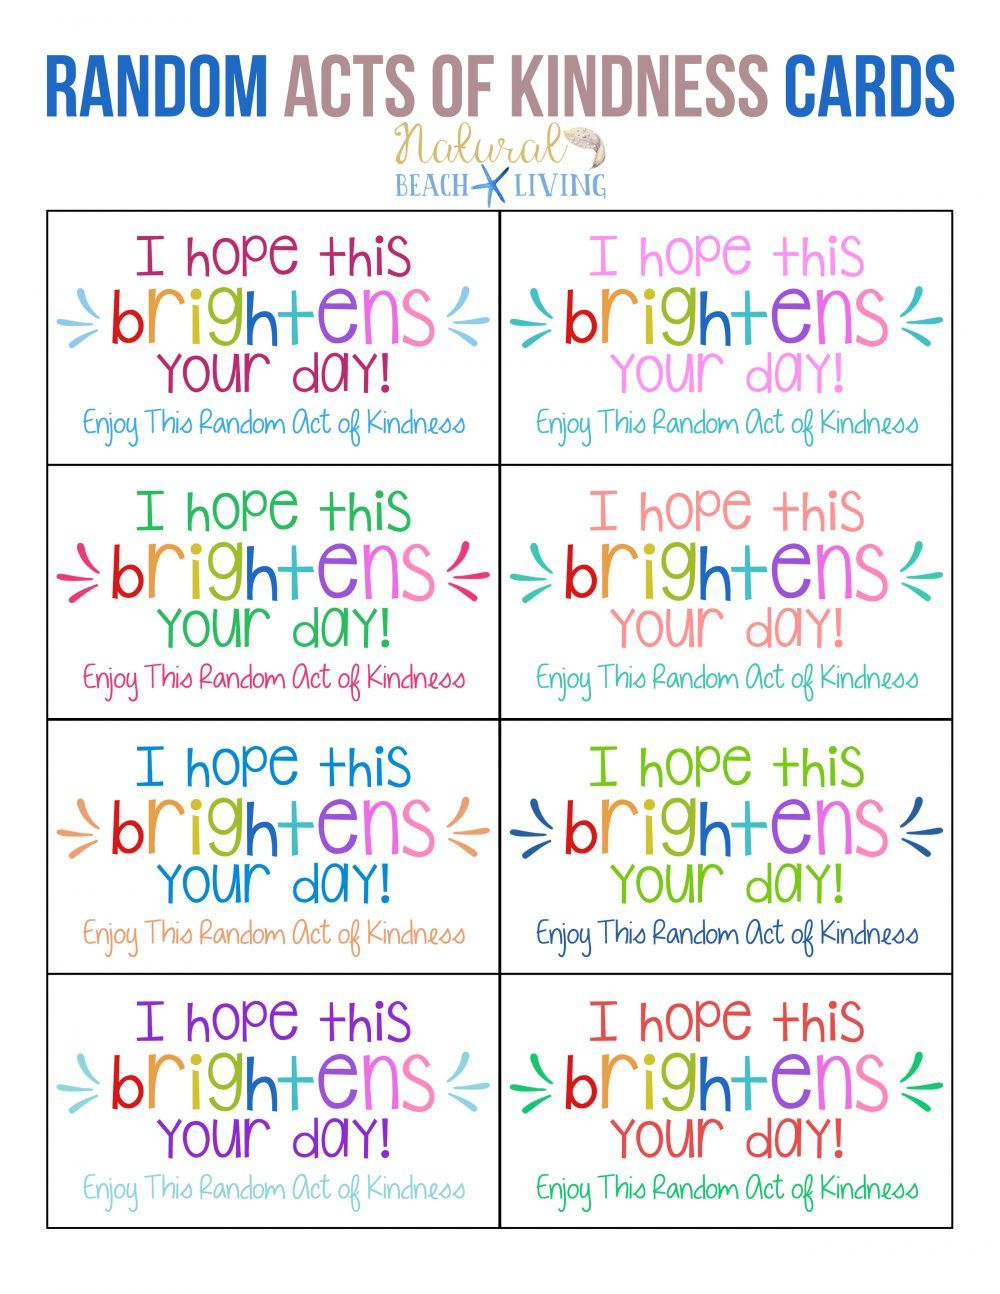 The Best Random Acts of Kindness Printable Cards Free | Girl Scouts ...